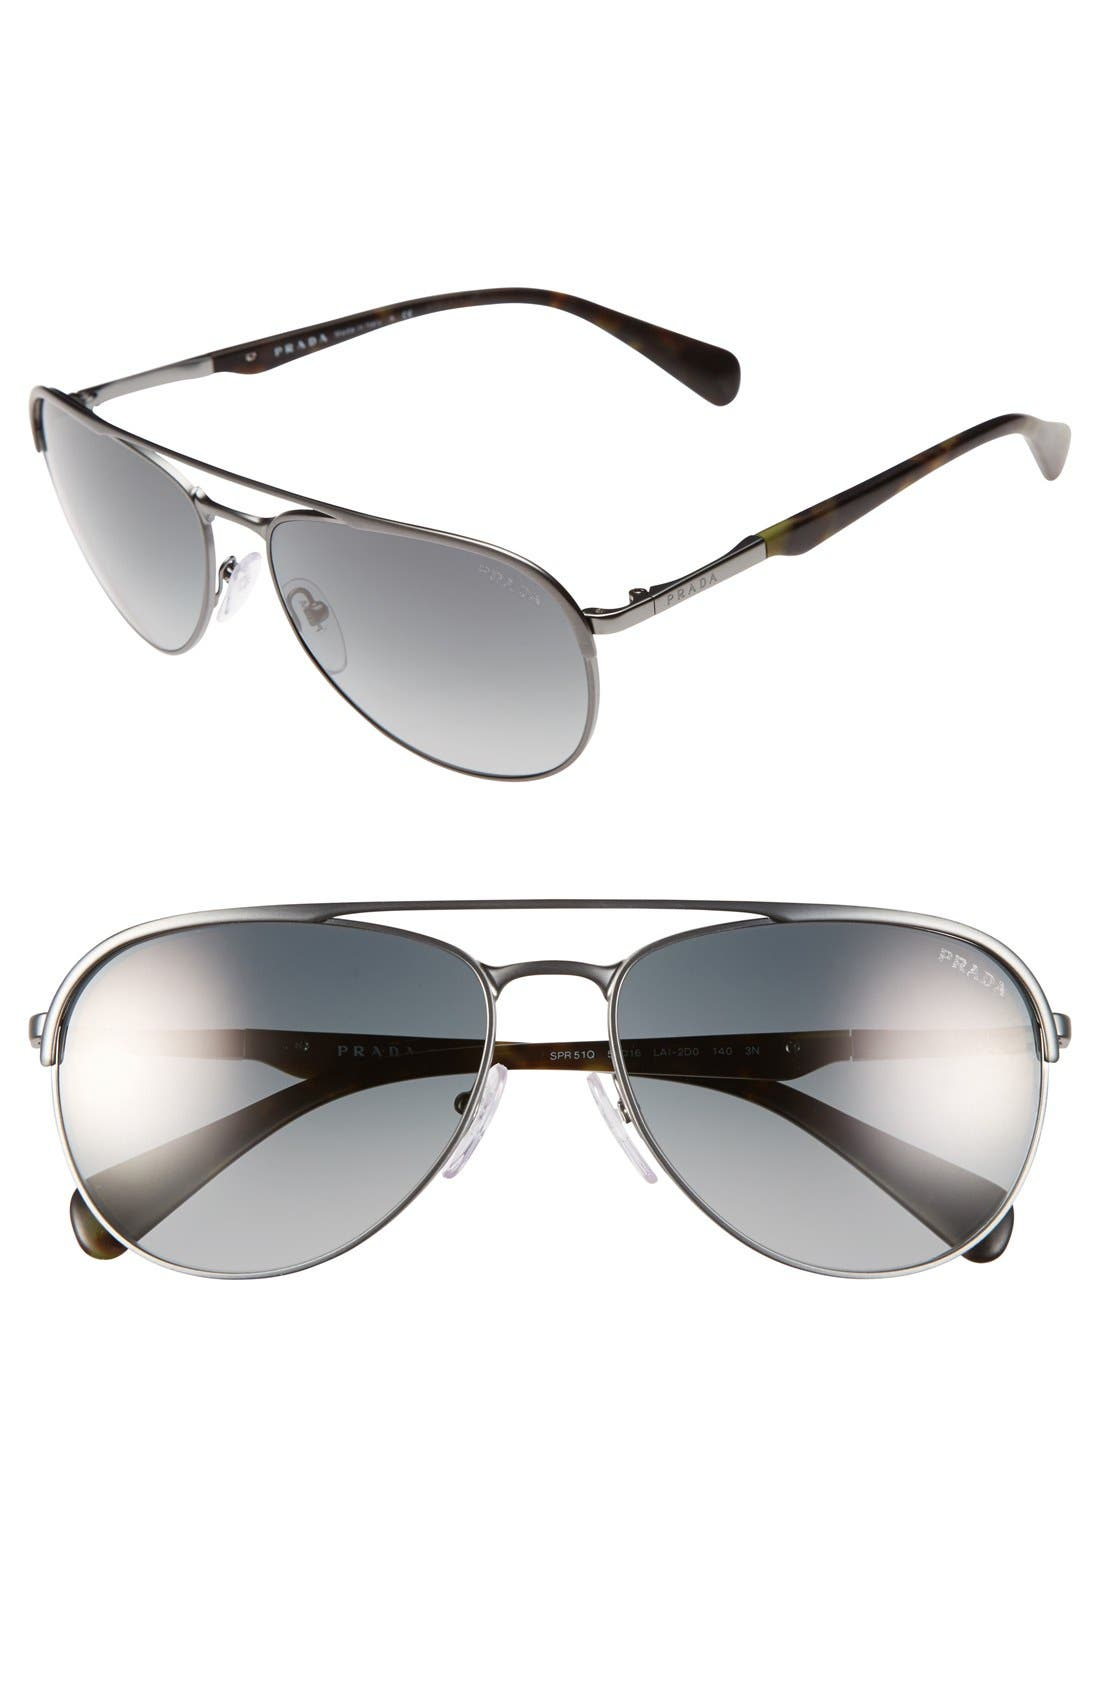 Main Image - Prada 59mm Aviator Sunglasses